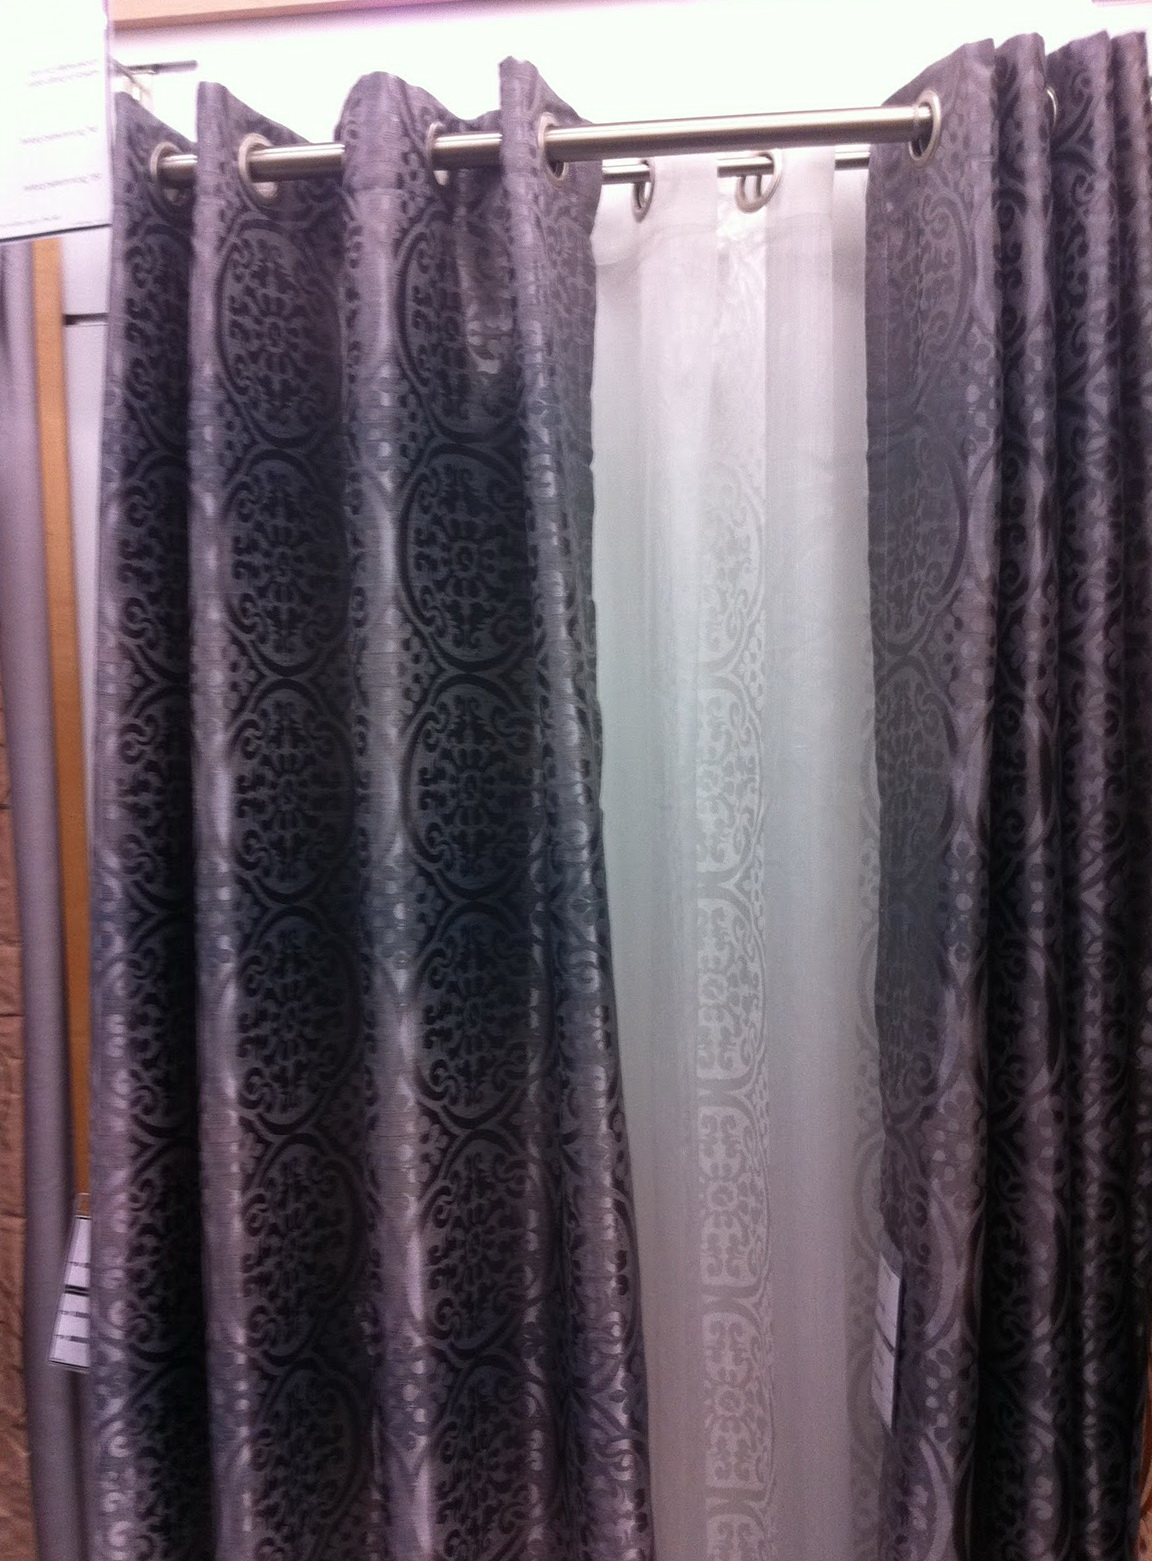 Blackout Curtain Liners Bed Bath And Beyond Home Design Ideas